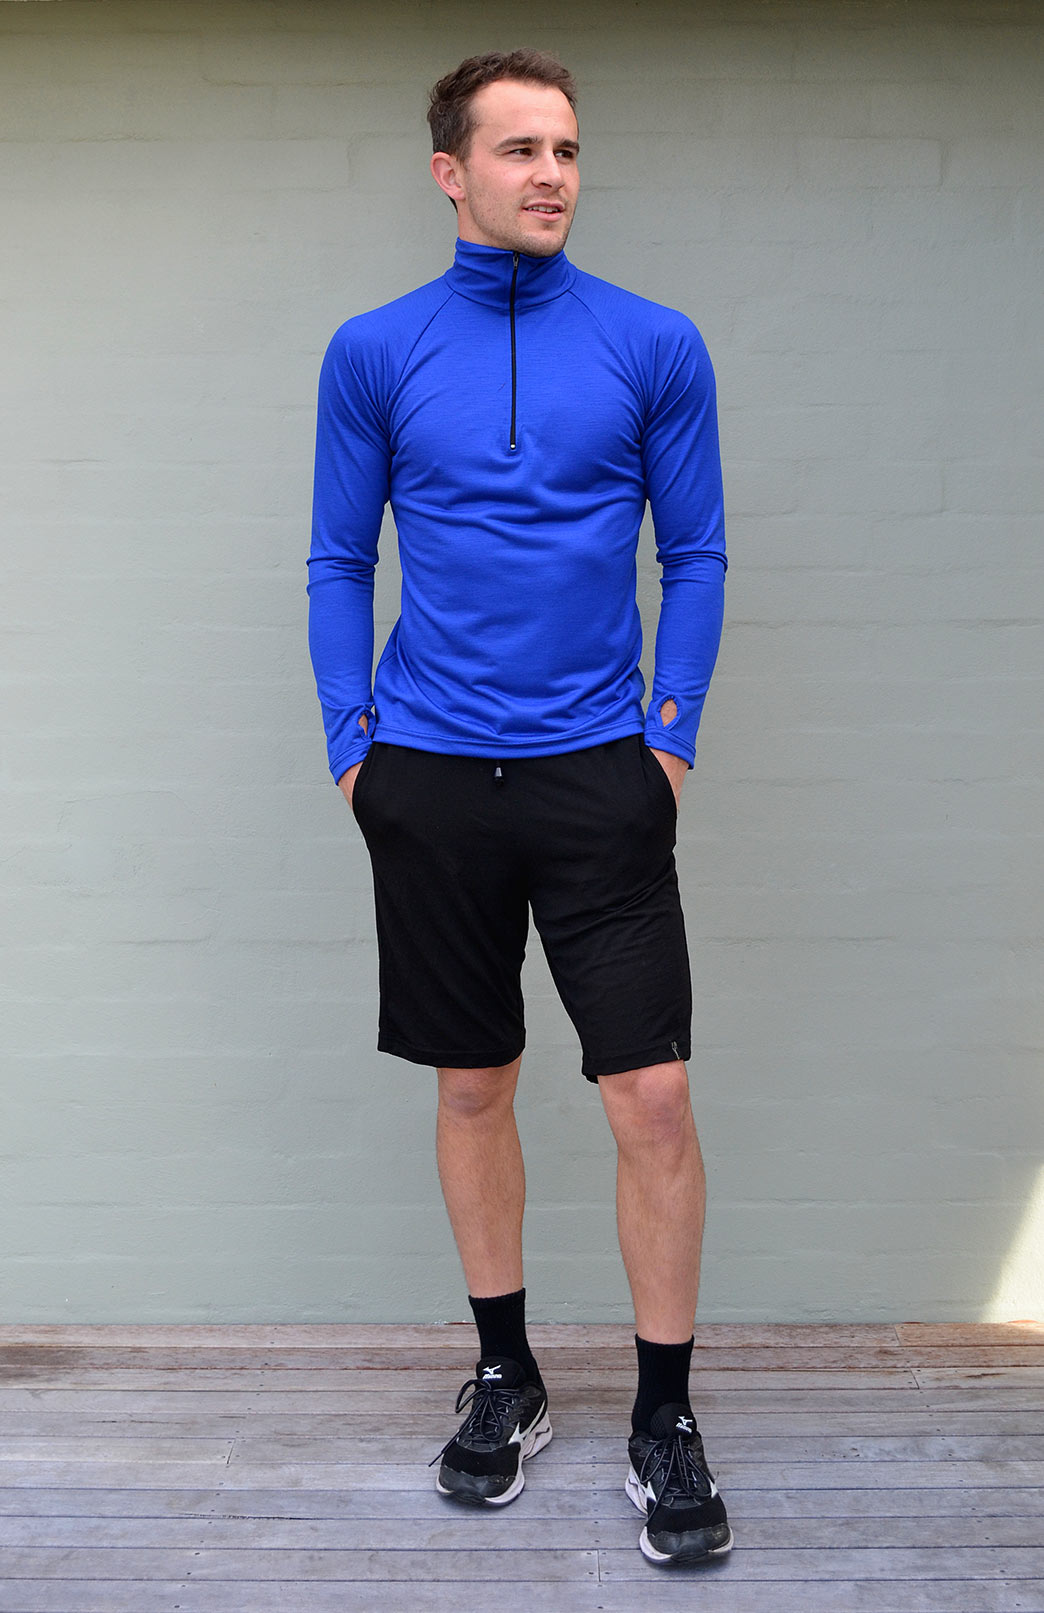 Men's Wool Shorts - Men's Black Merino Wool Sports and Outdoor Shorts - Smitten Merino Tasmania Australia